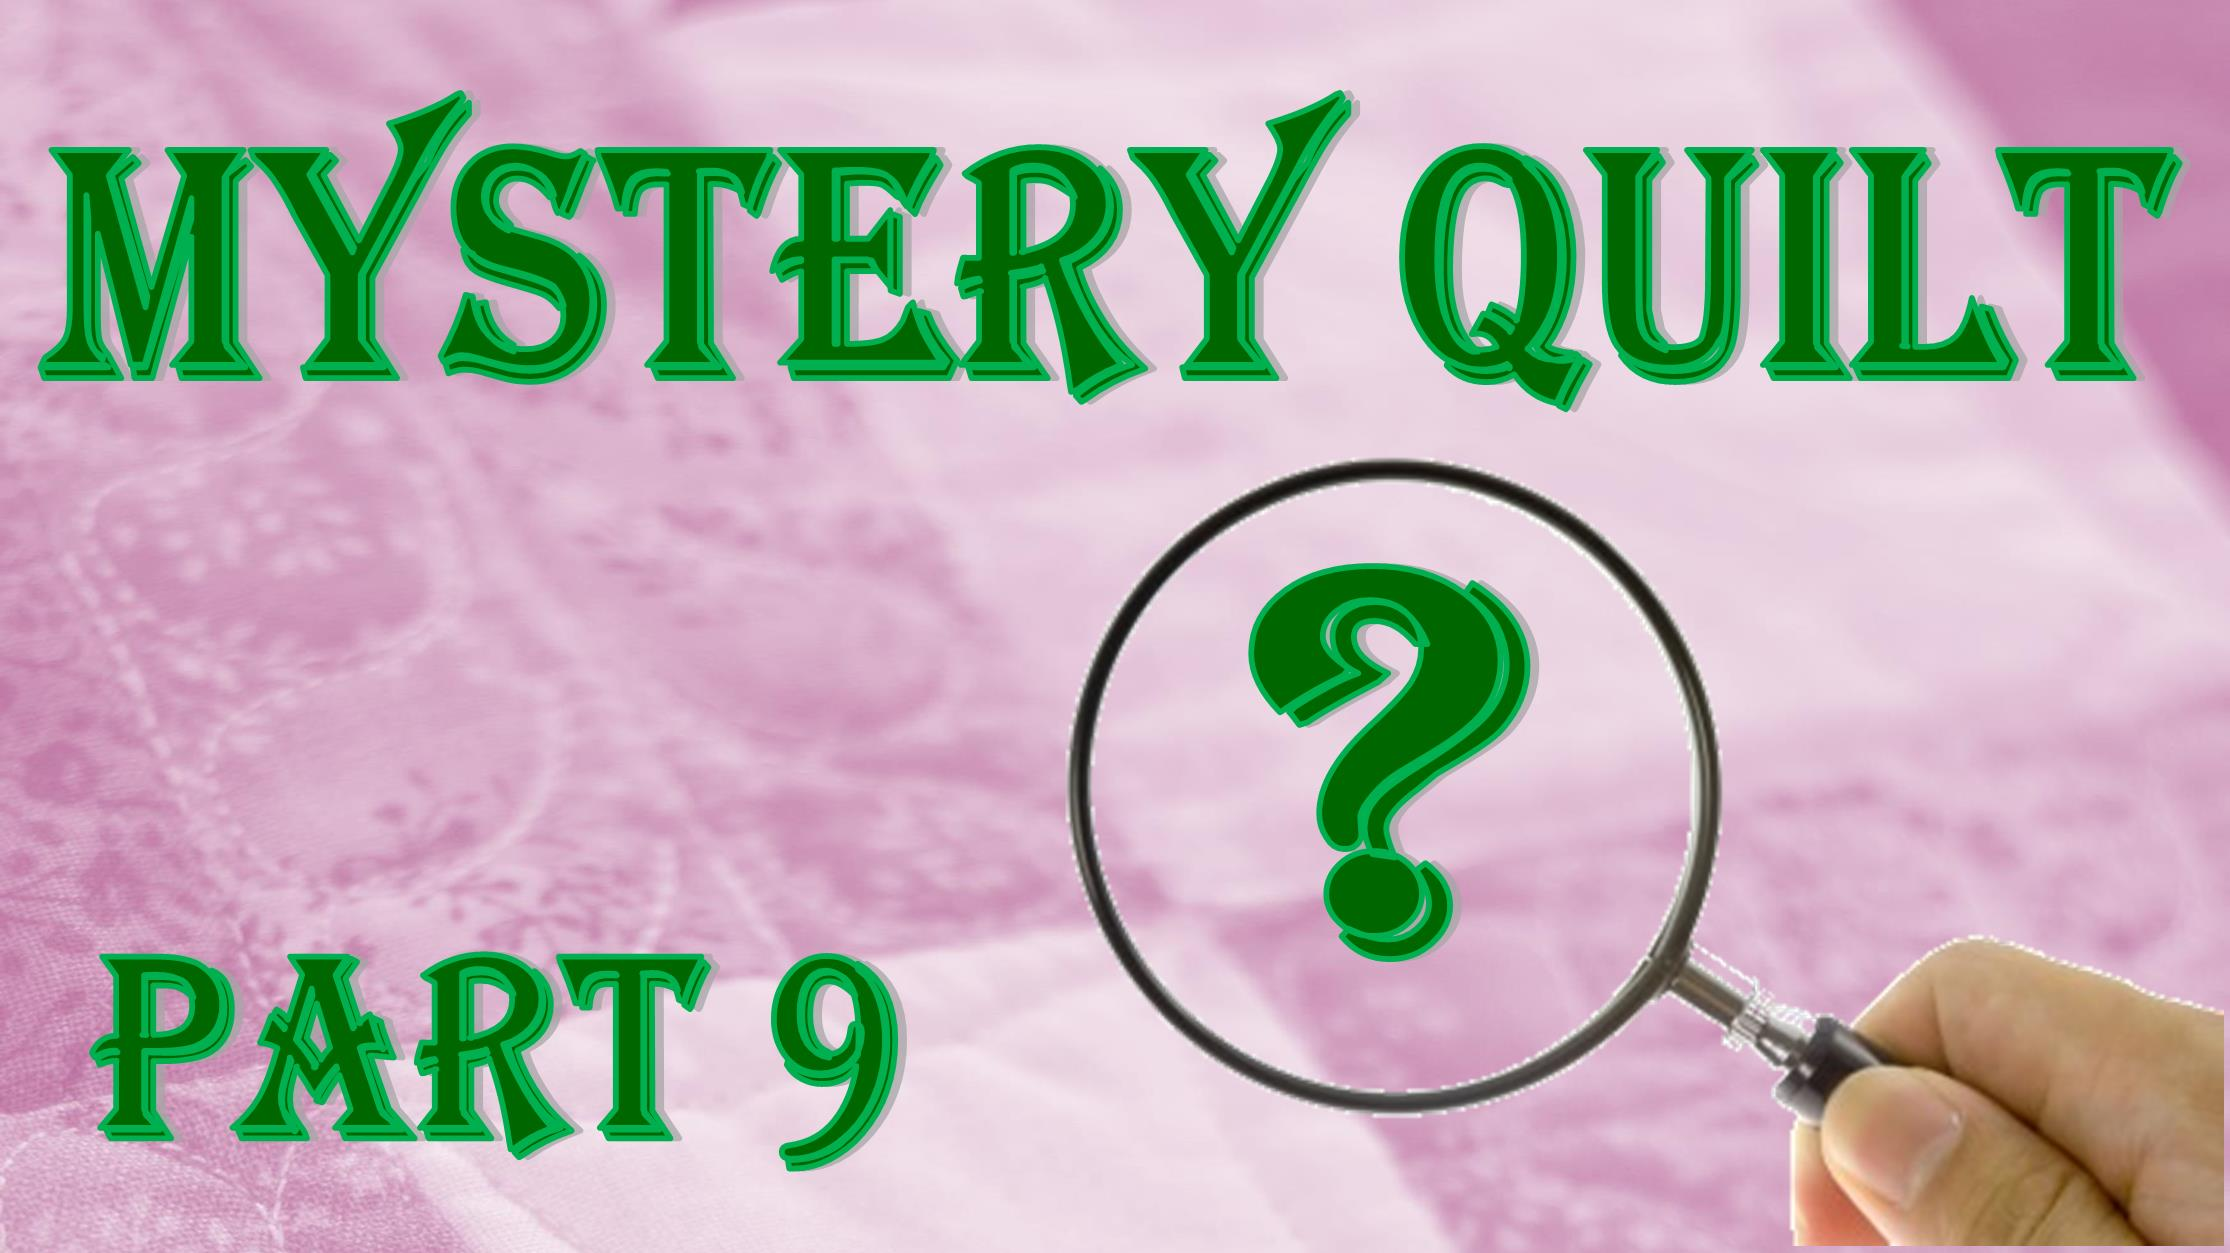 Mystery Quilt - Part 9